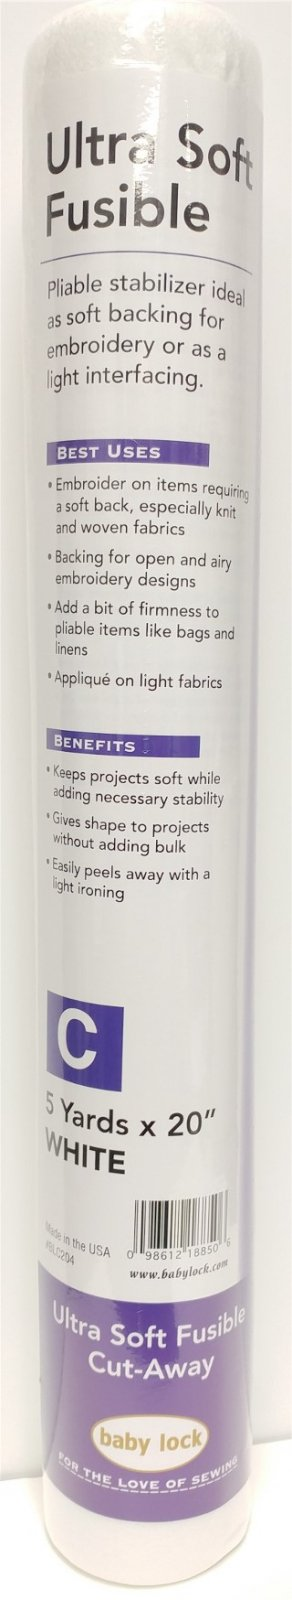 Ultra Soft Fusible Stabilizer BLC204 - 5yd x 20 *